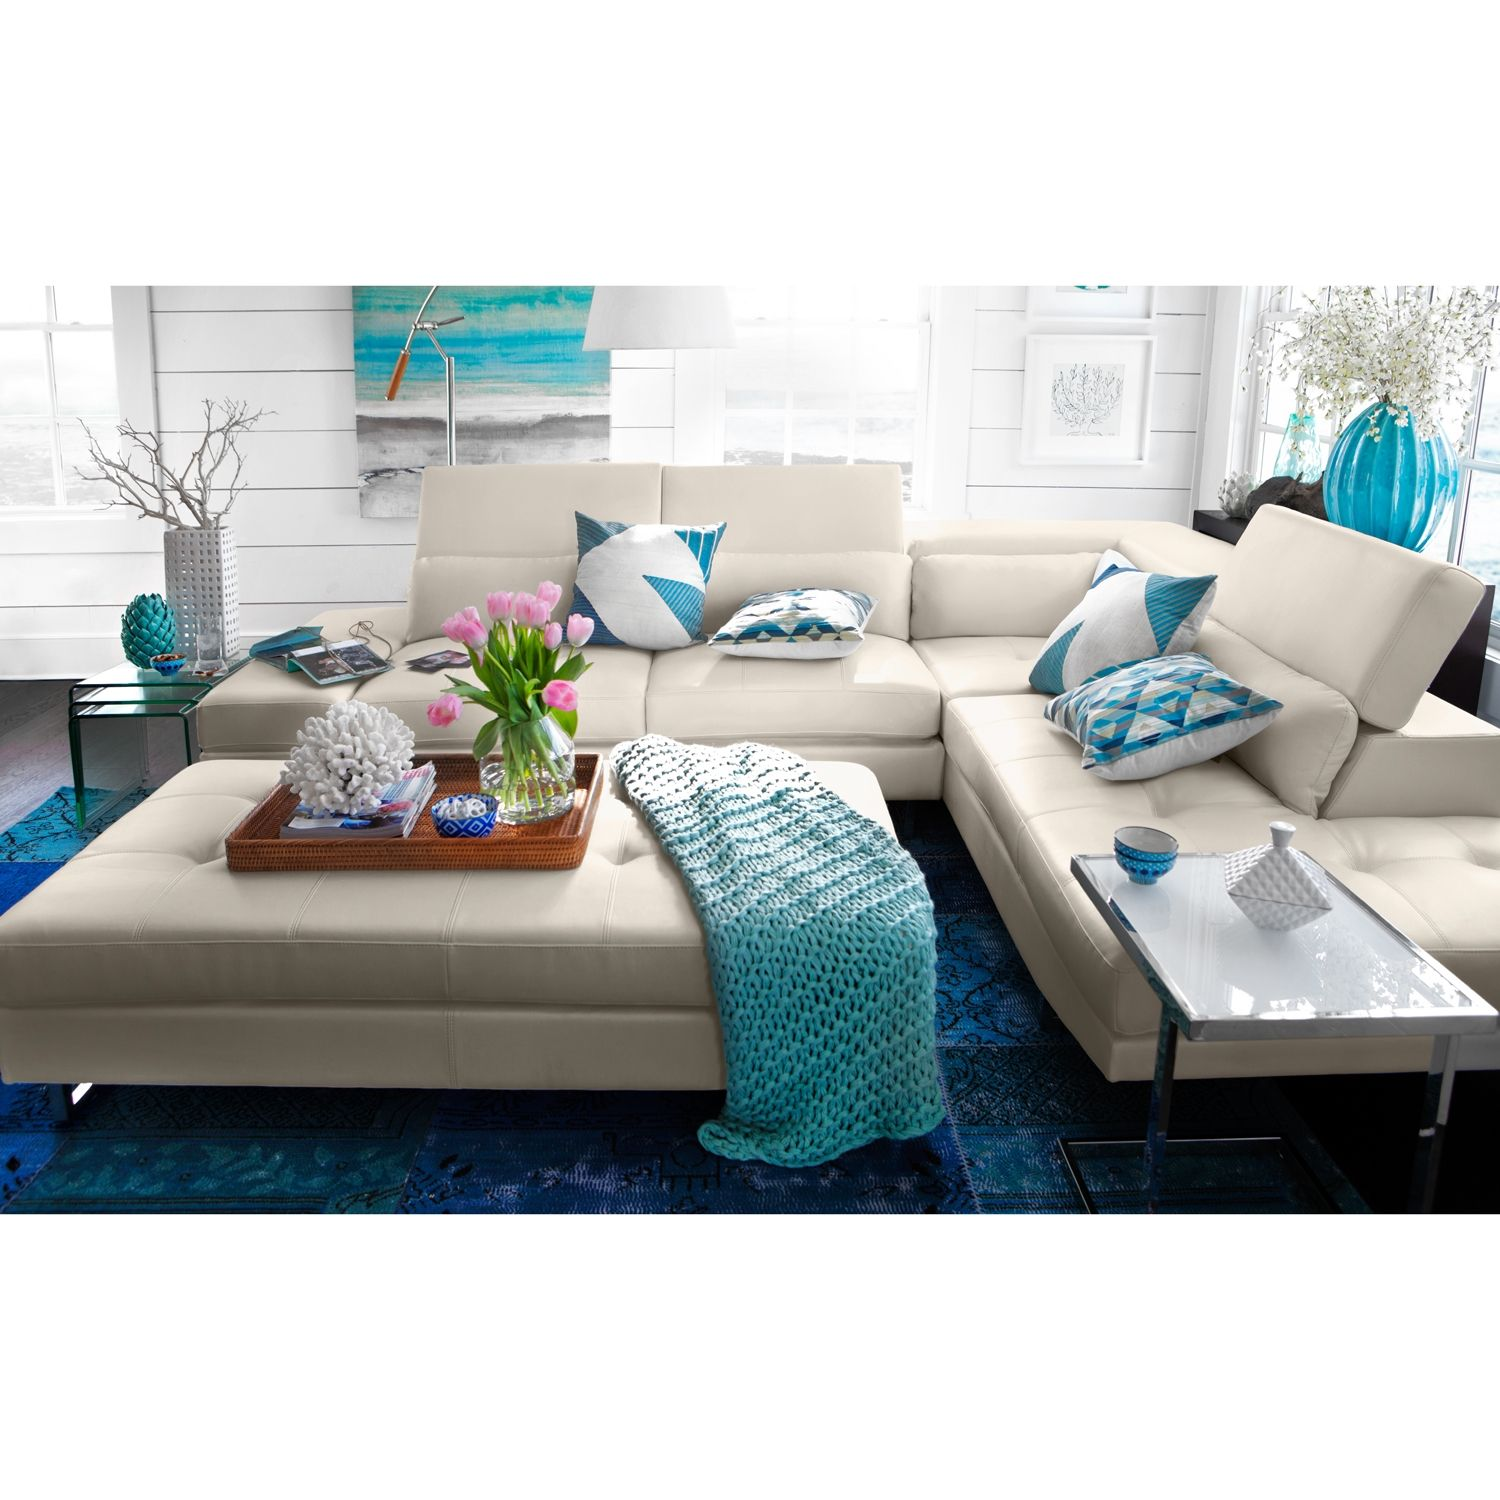 Value City Living Room Furniture Living Room Furniture Madrid 2 Pc Sectional Glam Pinterest